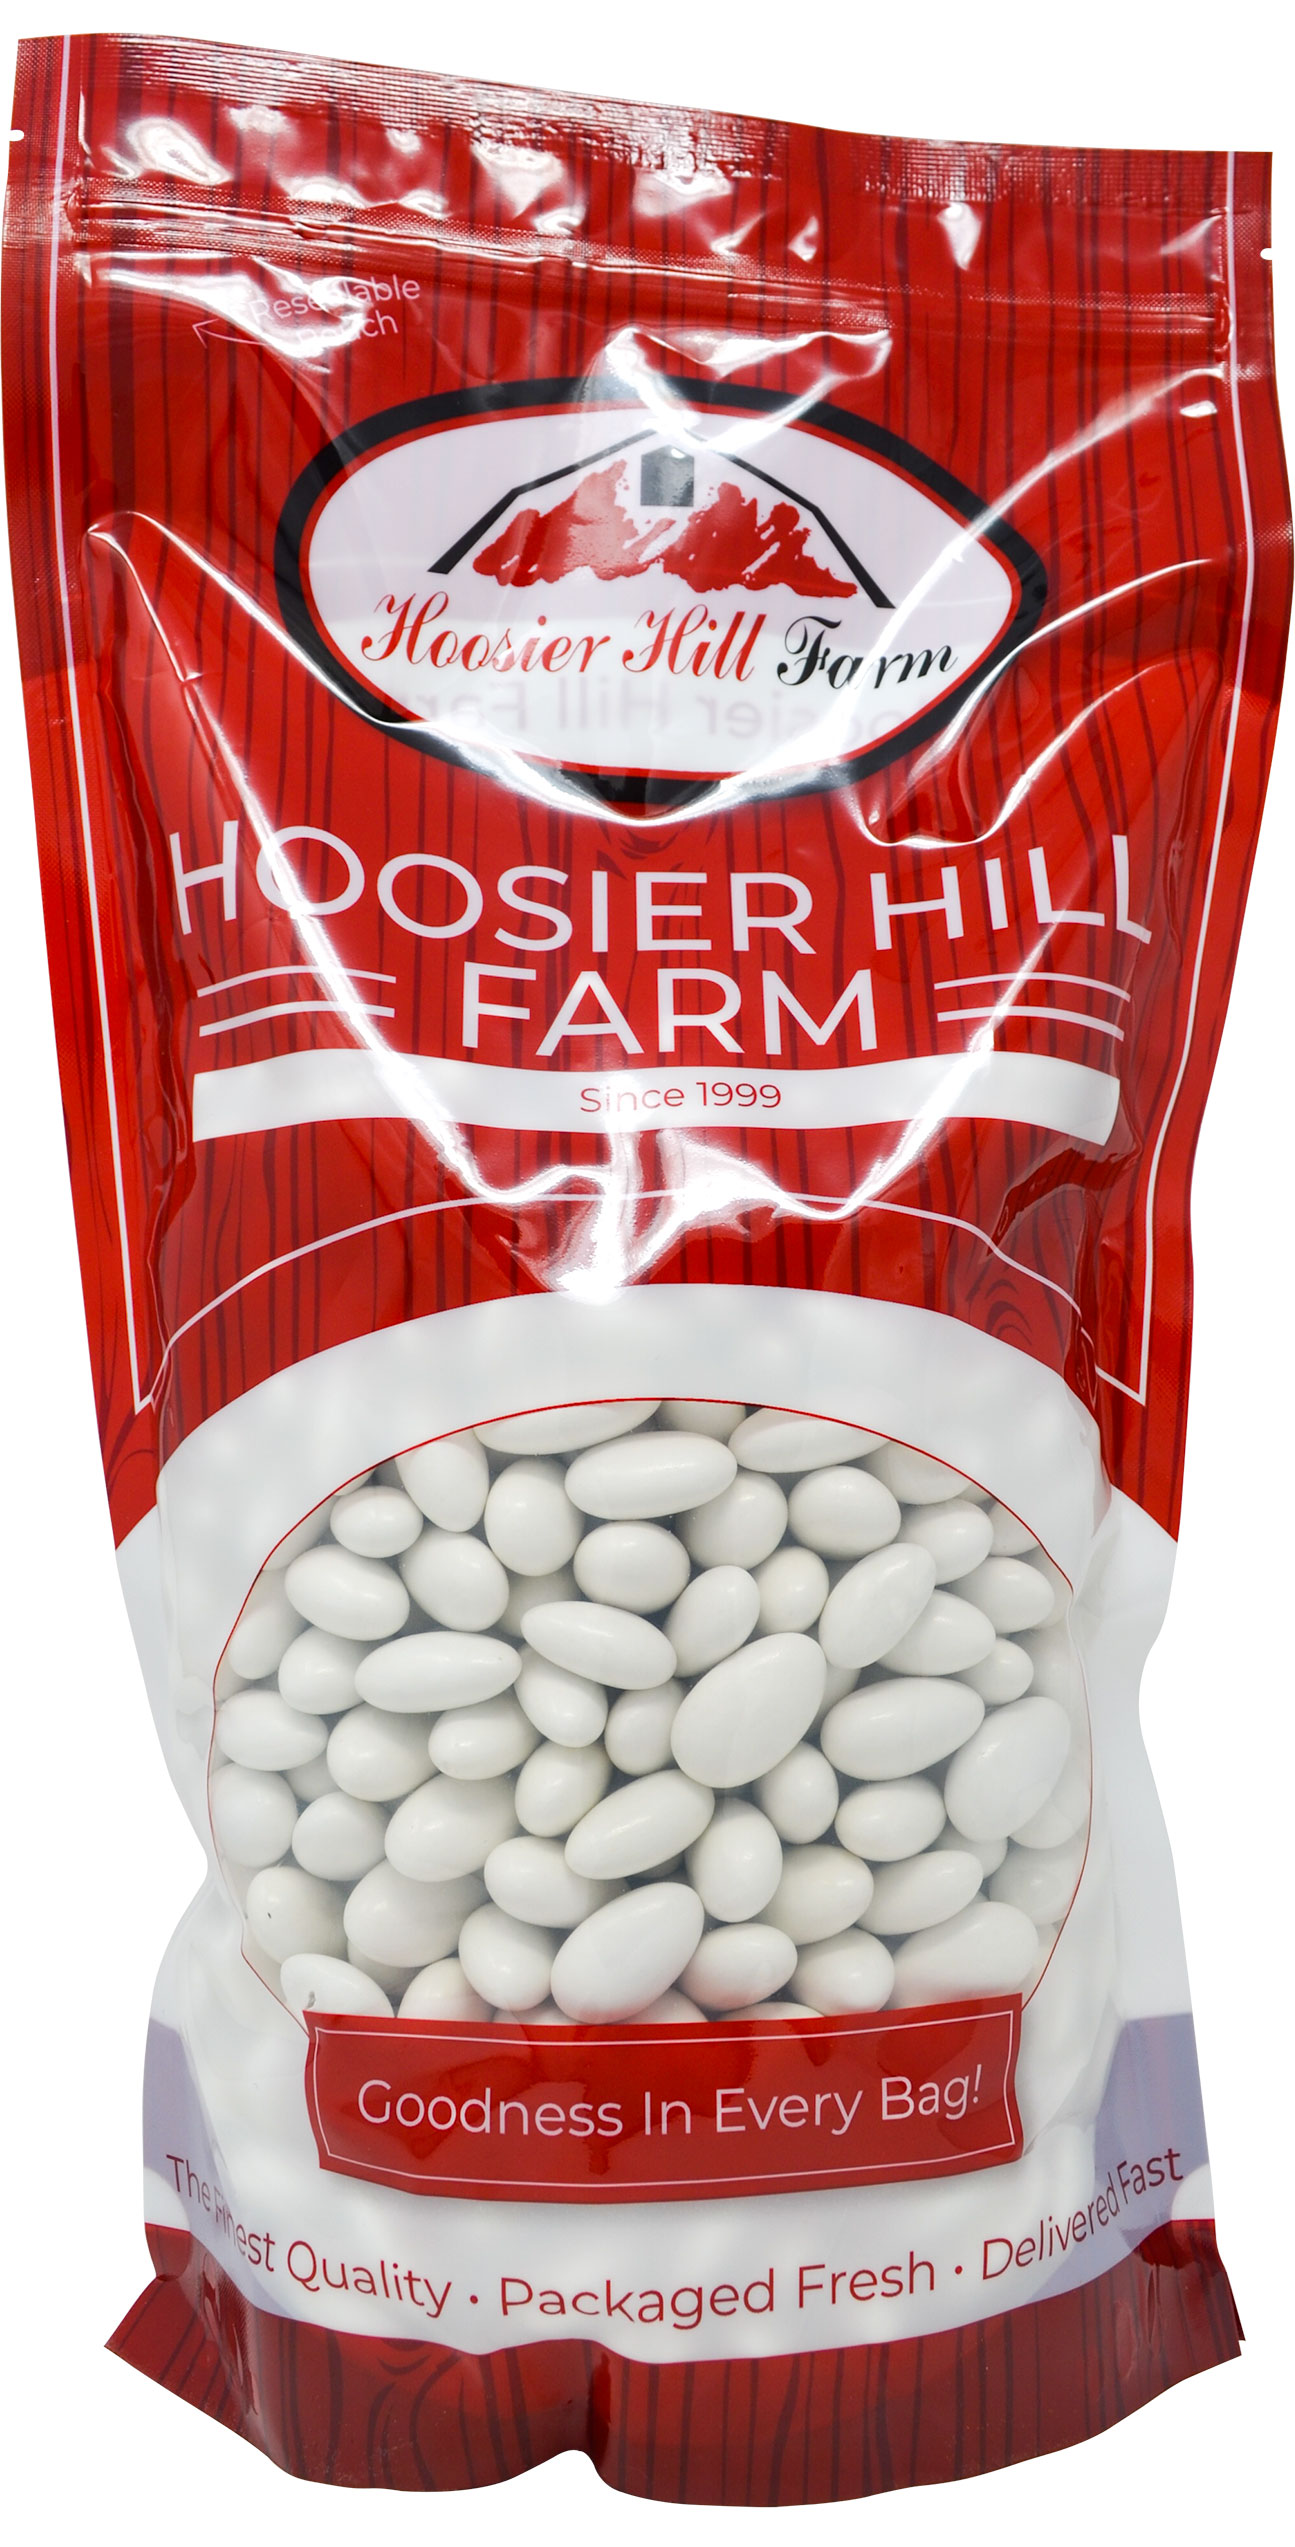 White Jordan Almonds, Hoosier Hill Farm, 1.5 lbs.